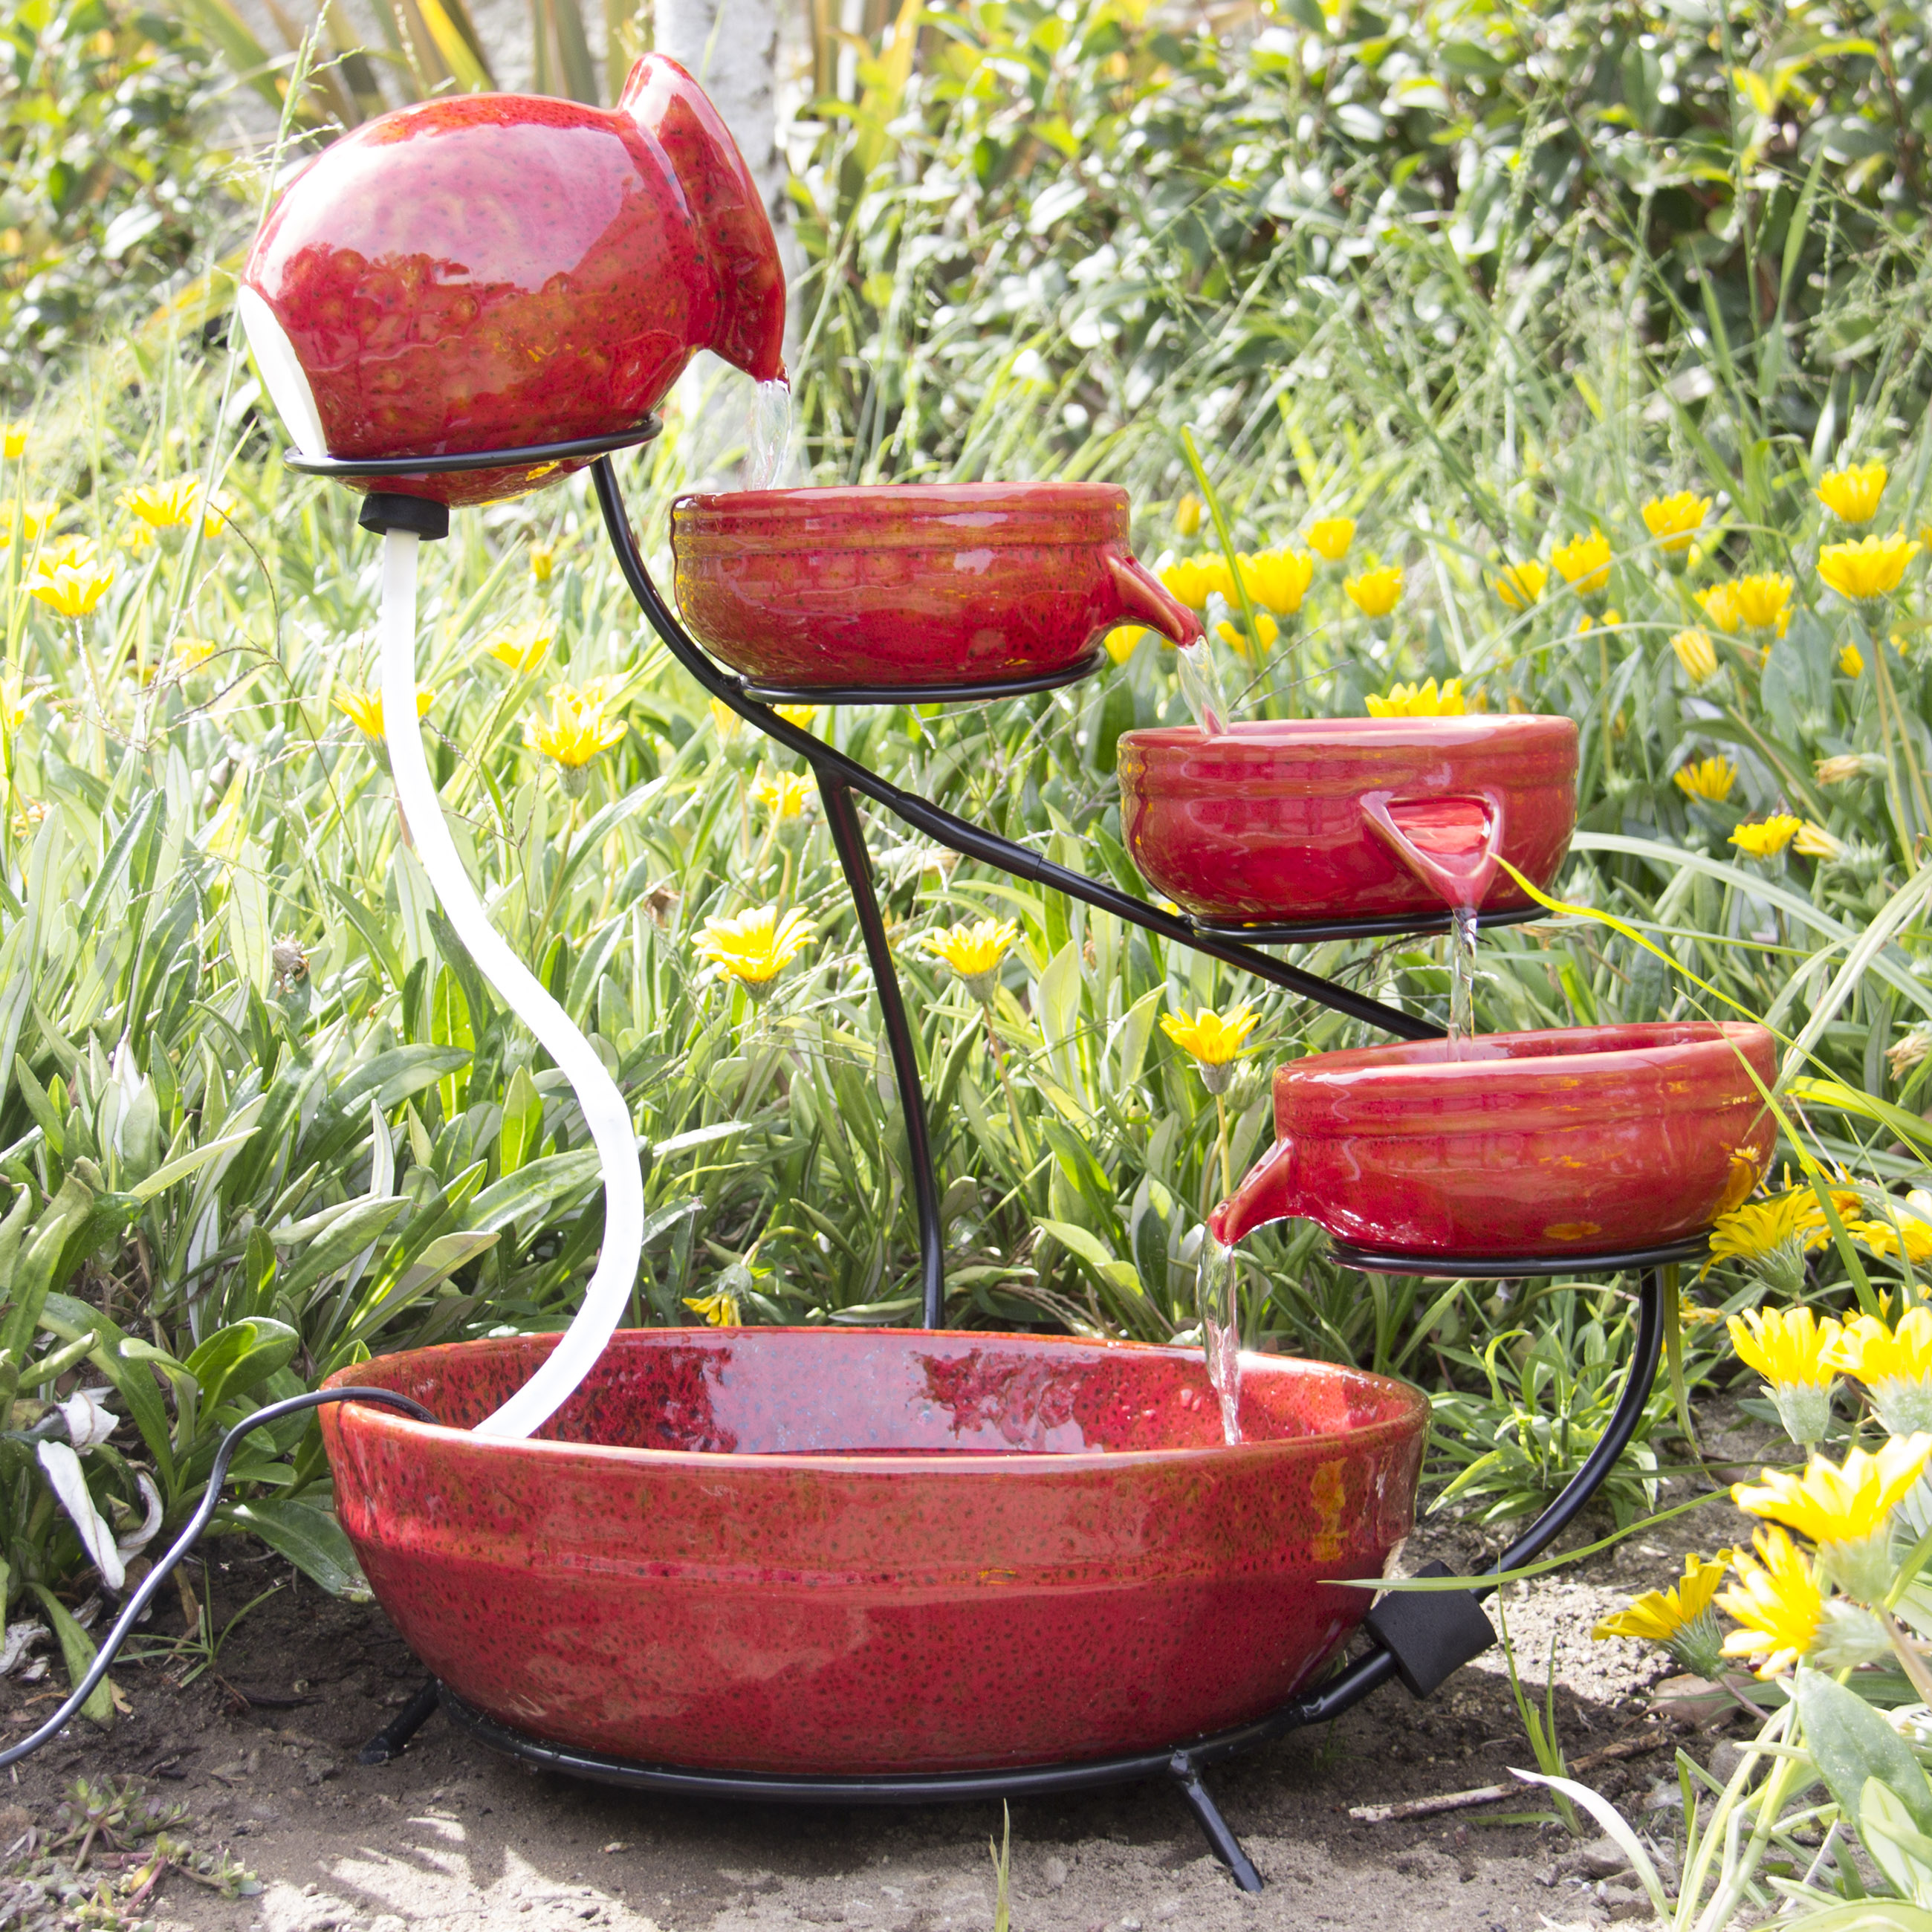 Best Choice Products Ceramic Solar Water Fountain Garden Zen Free Standing Weather Proof Red by Best Choice Products